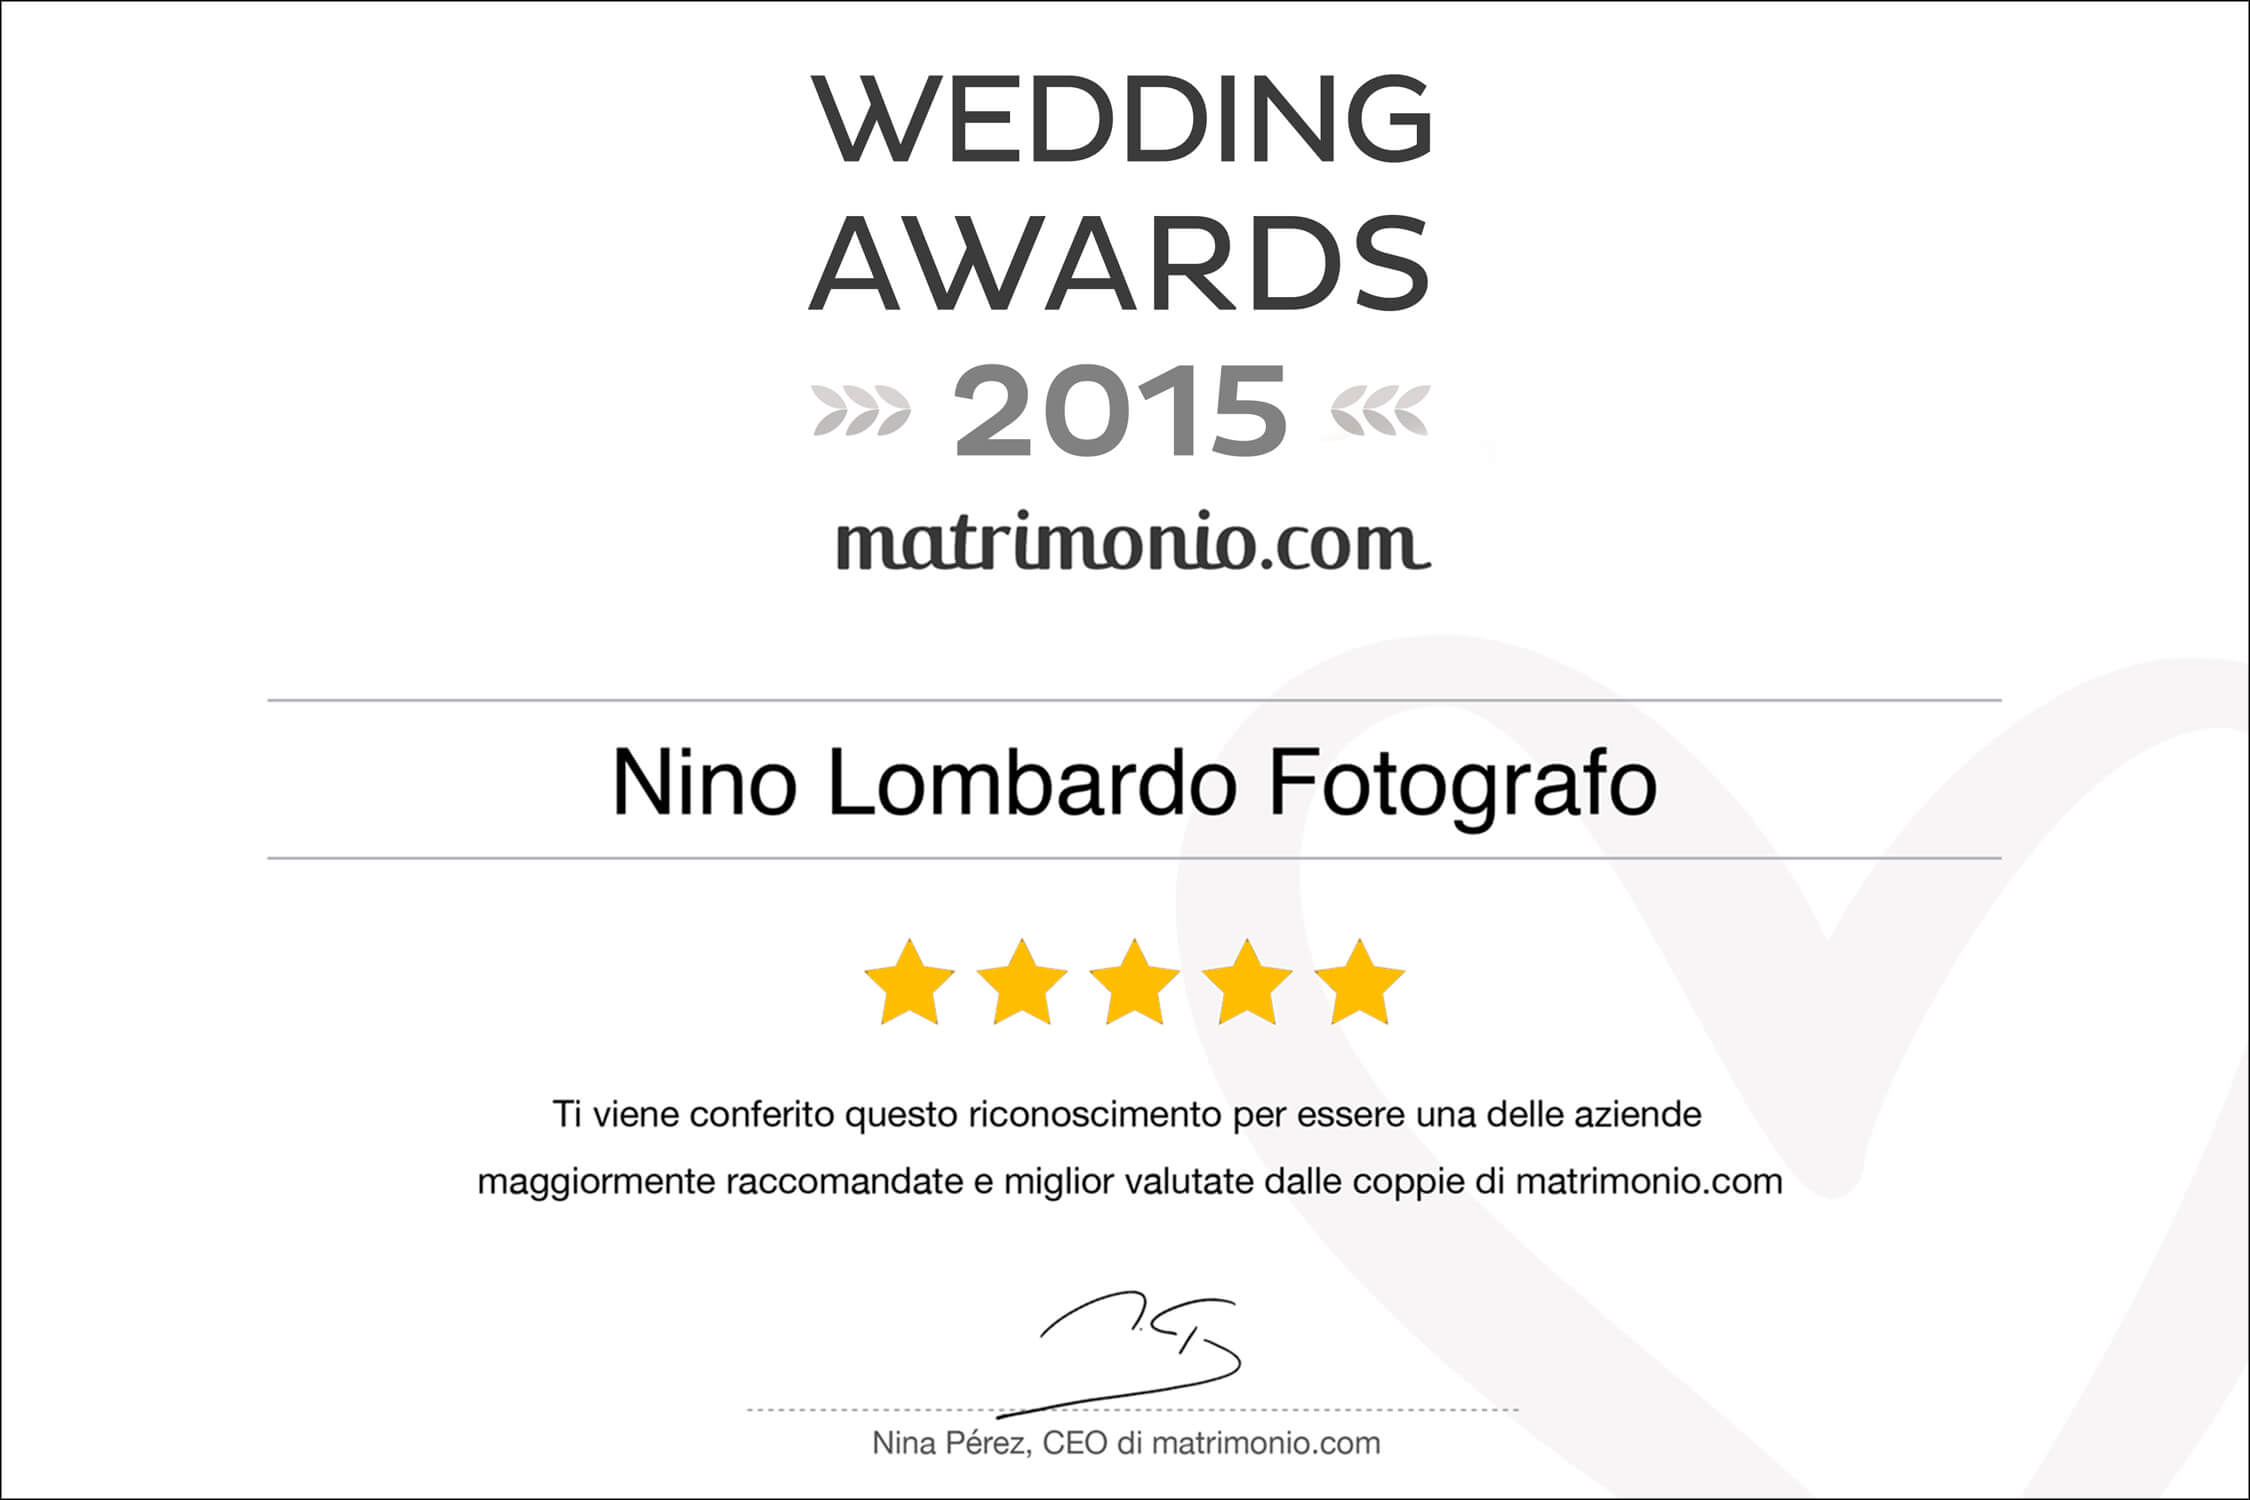 2015 Best Testimonials Wedding Award matrimonio.com Italy Photographer